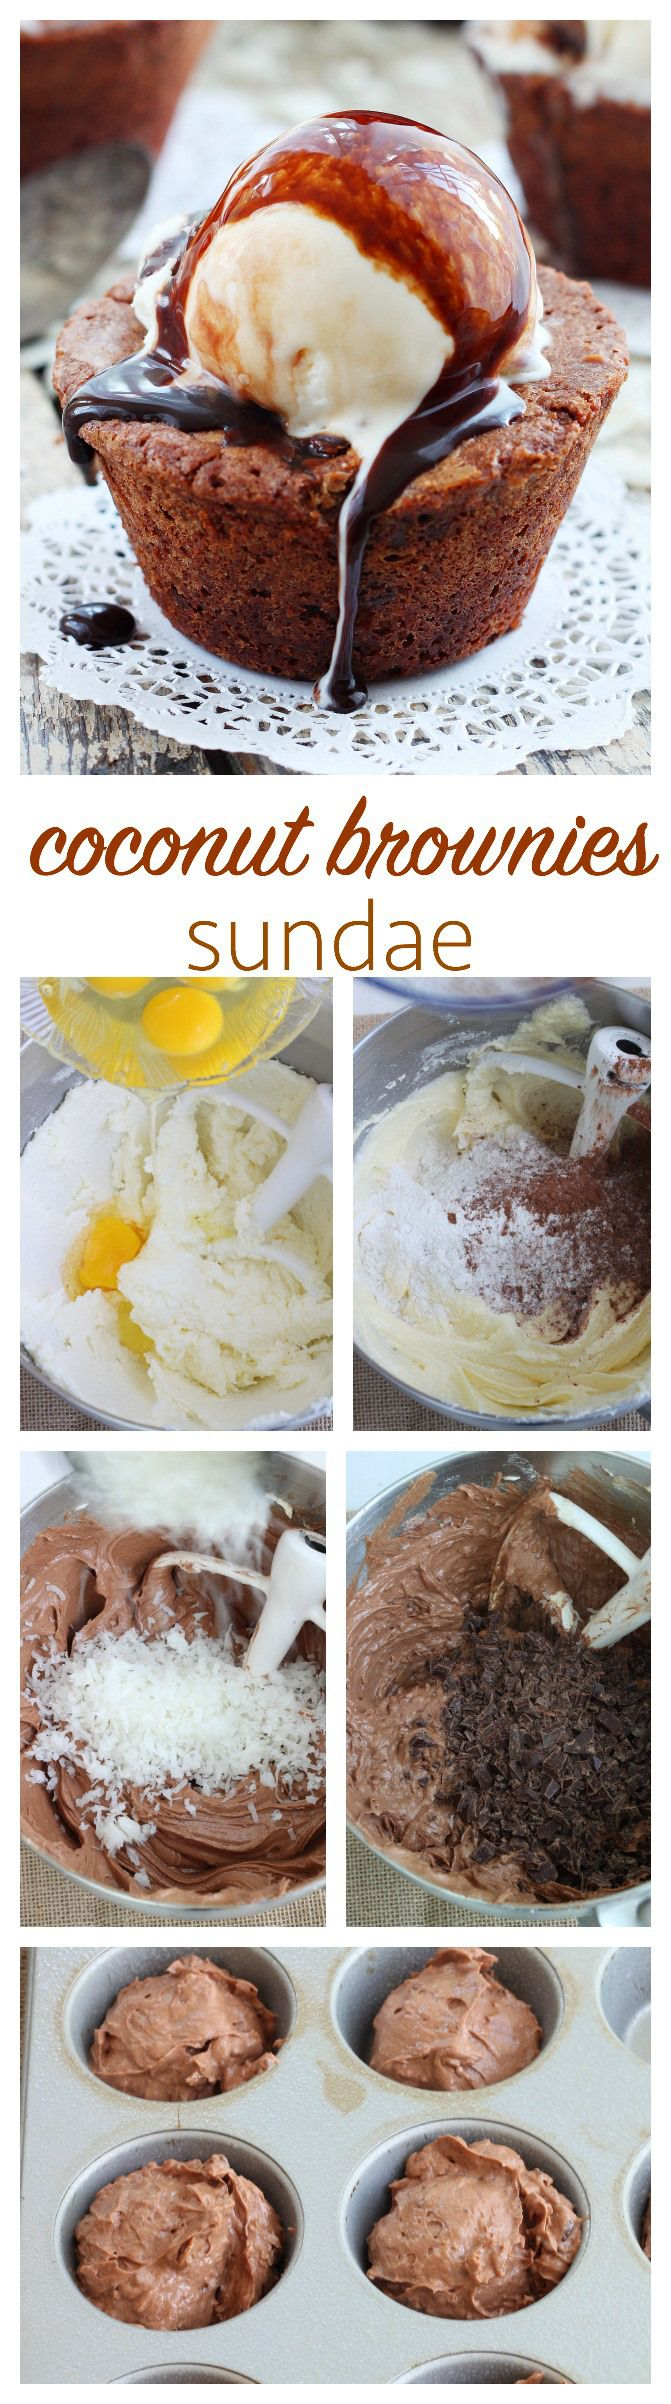 Easy sundaes recipes